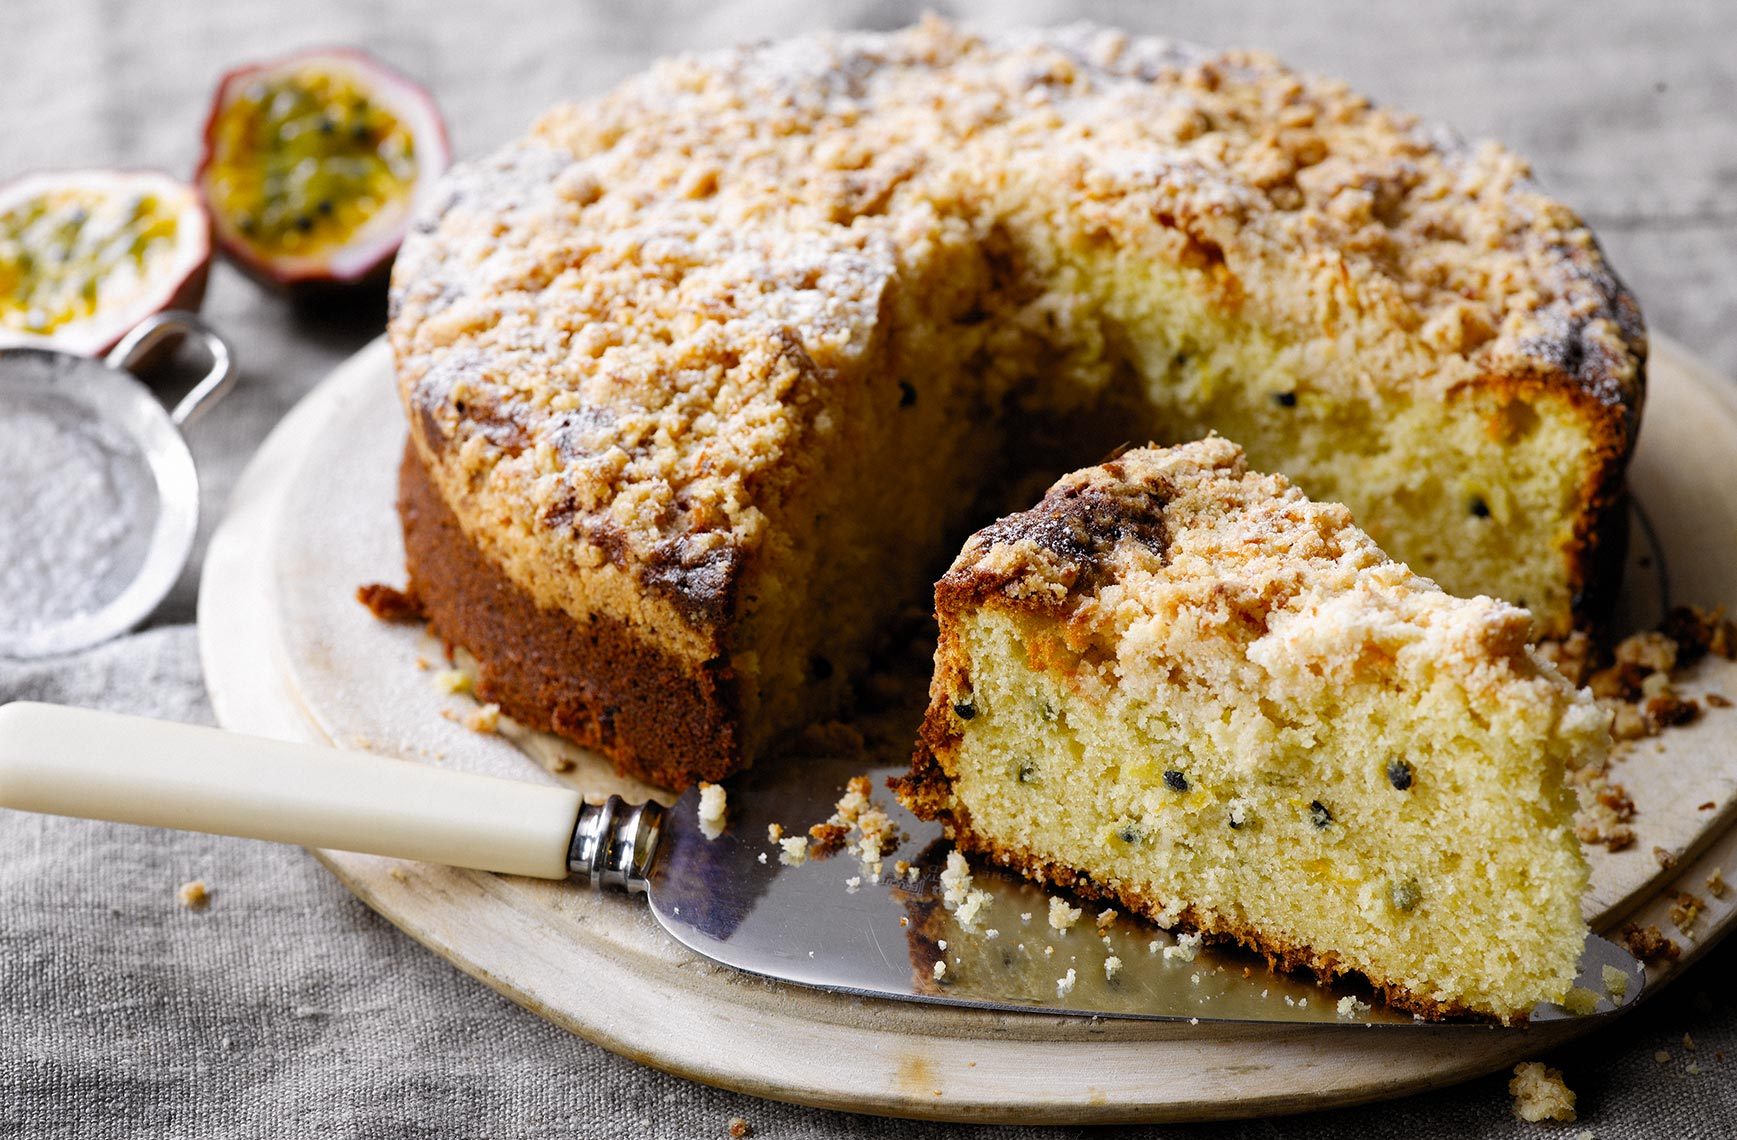 Passion fruit cake | Colin Campbell - Food Photographer